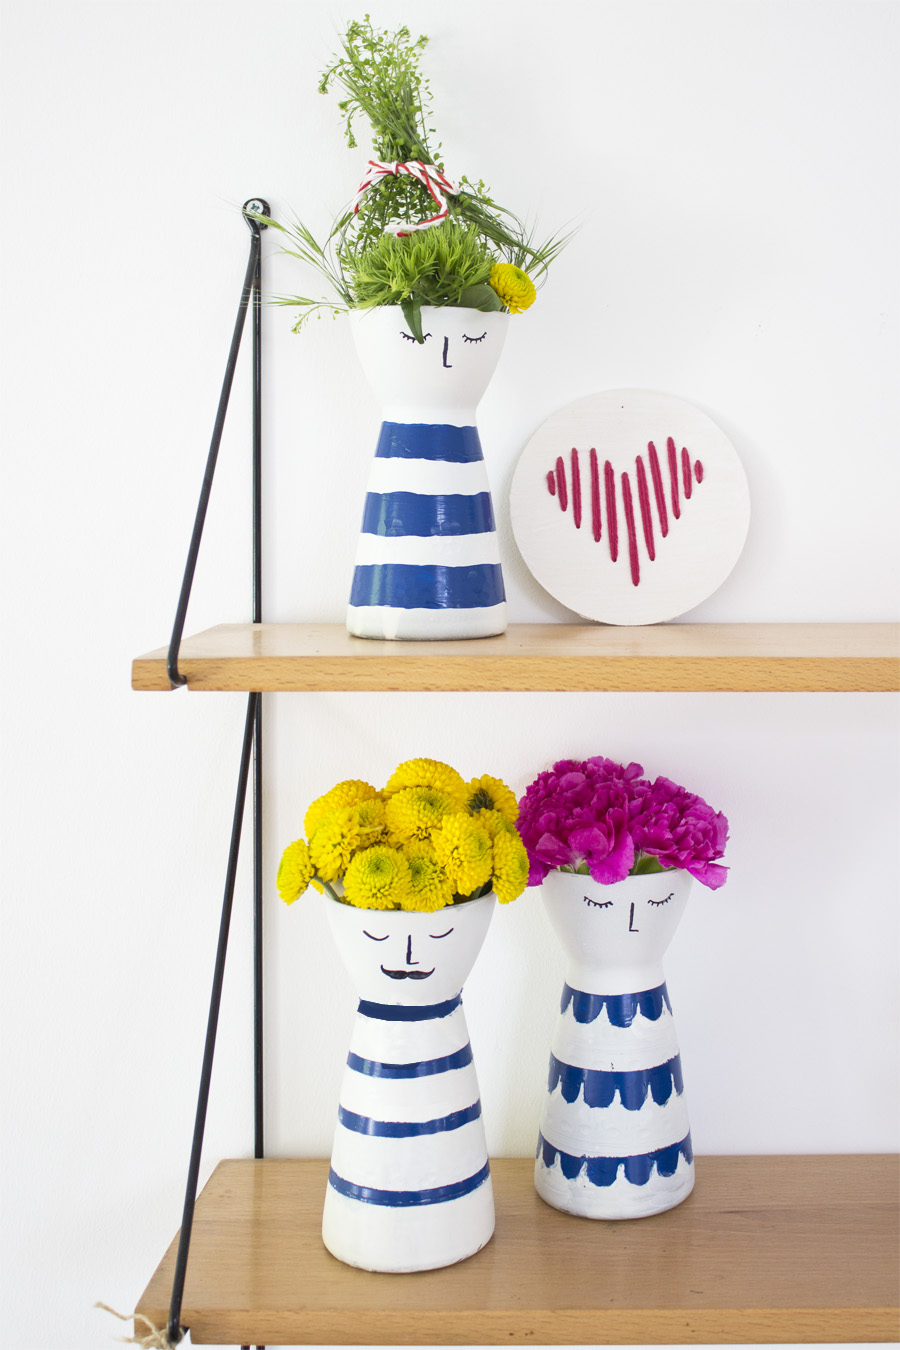 Diy vases with faces look what i made diy flower vases with faces look what i made reviewsmspy